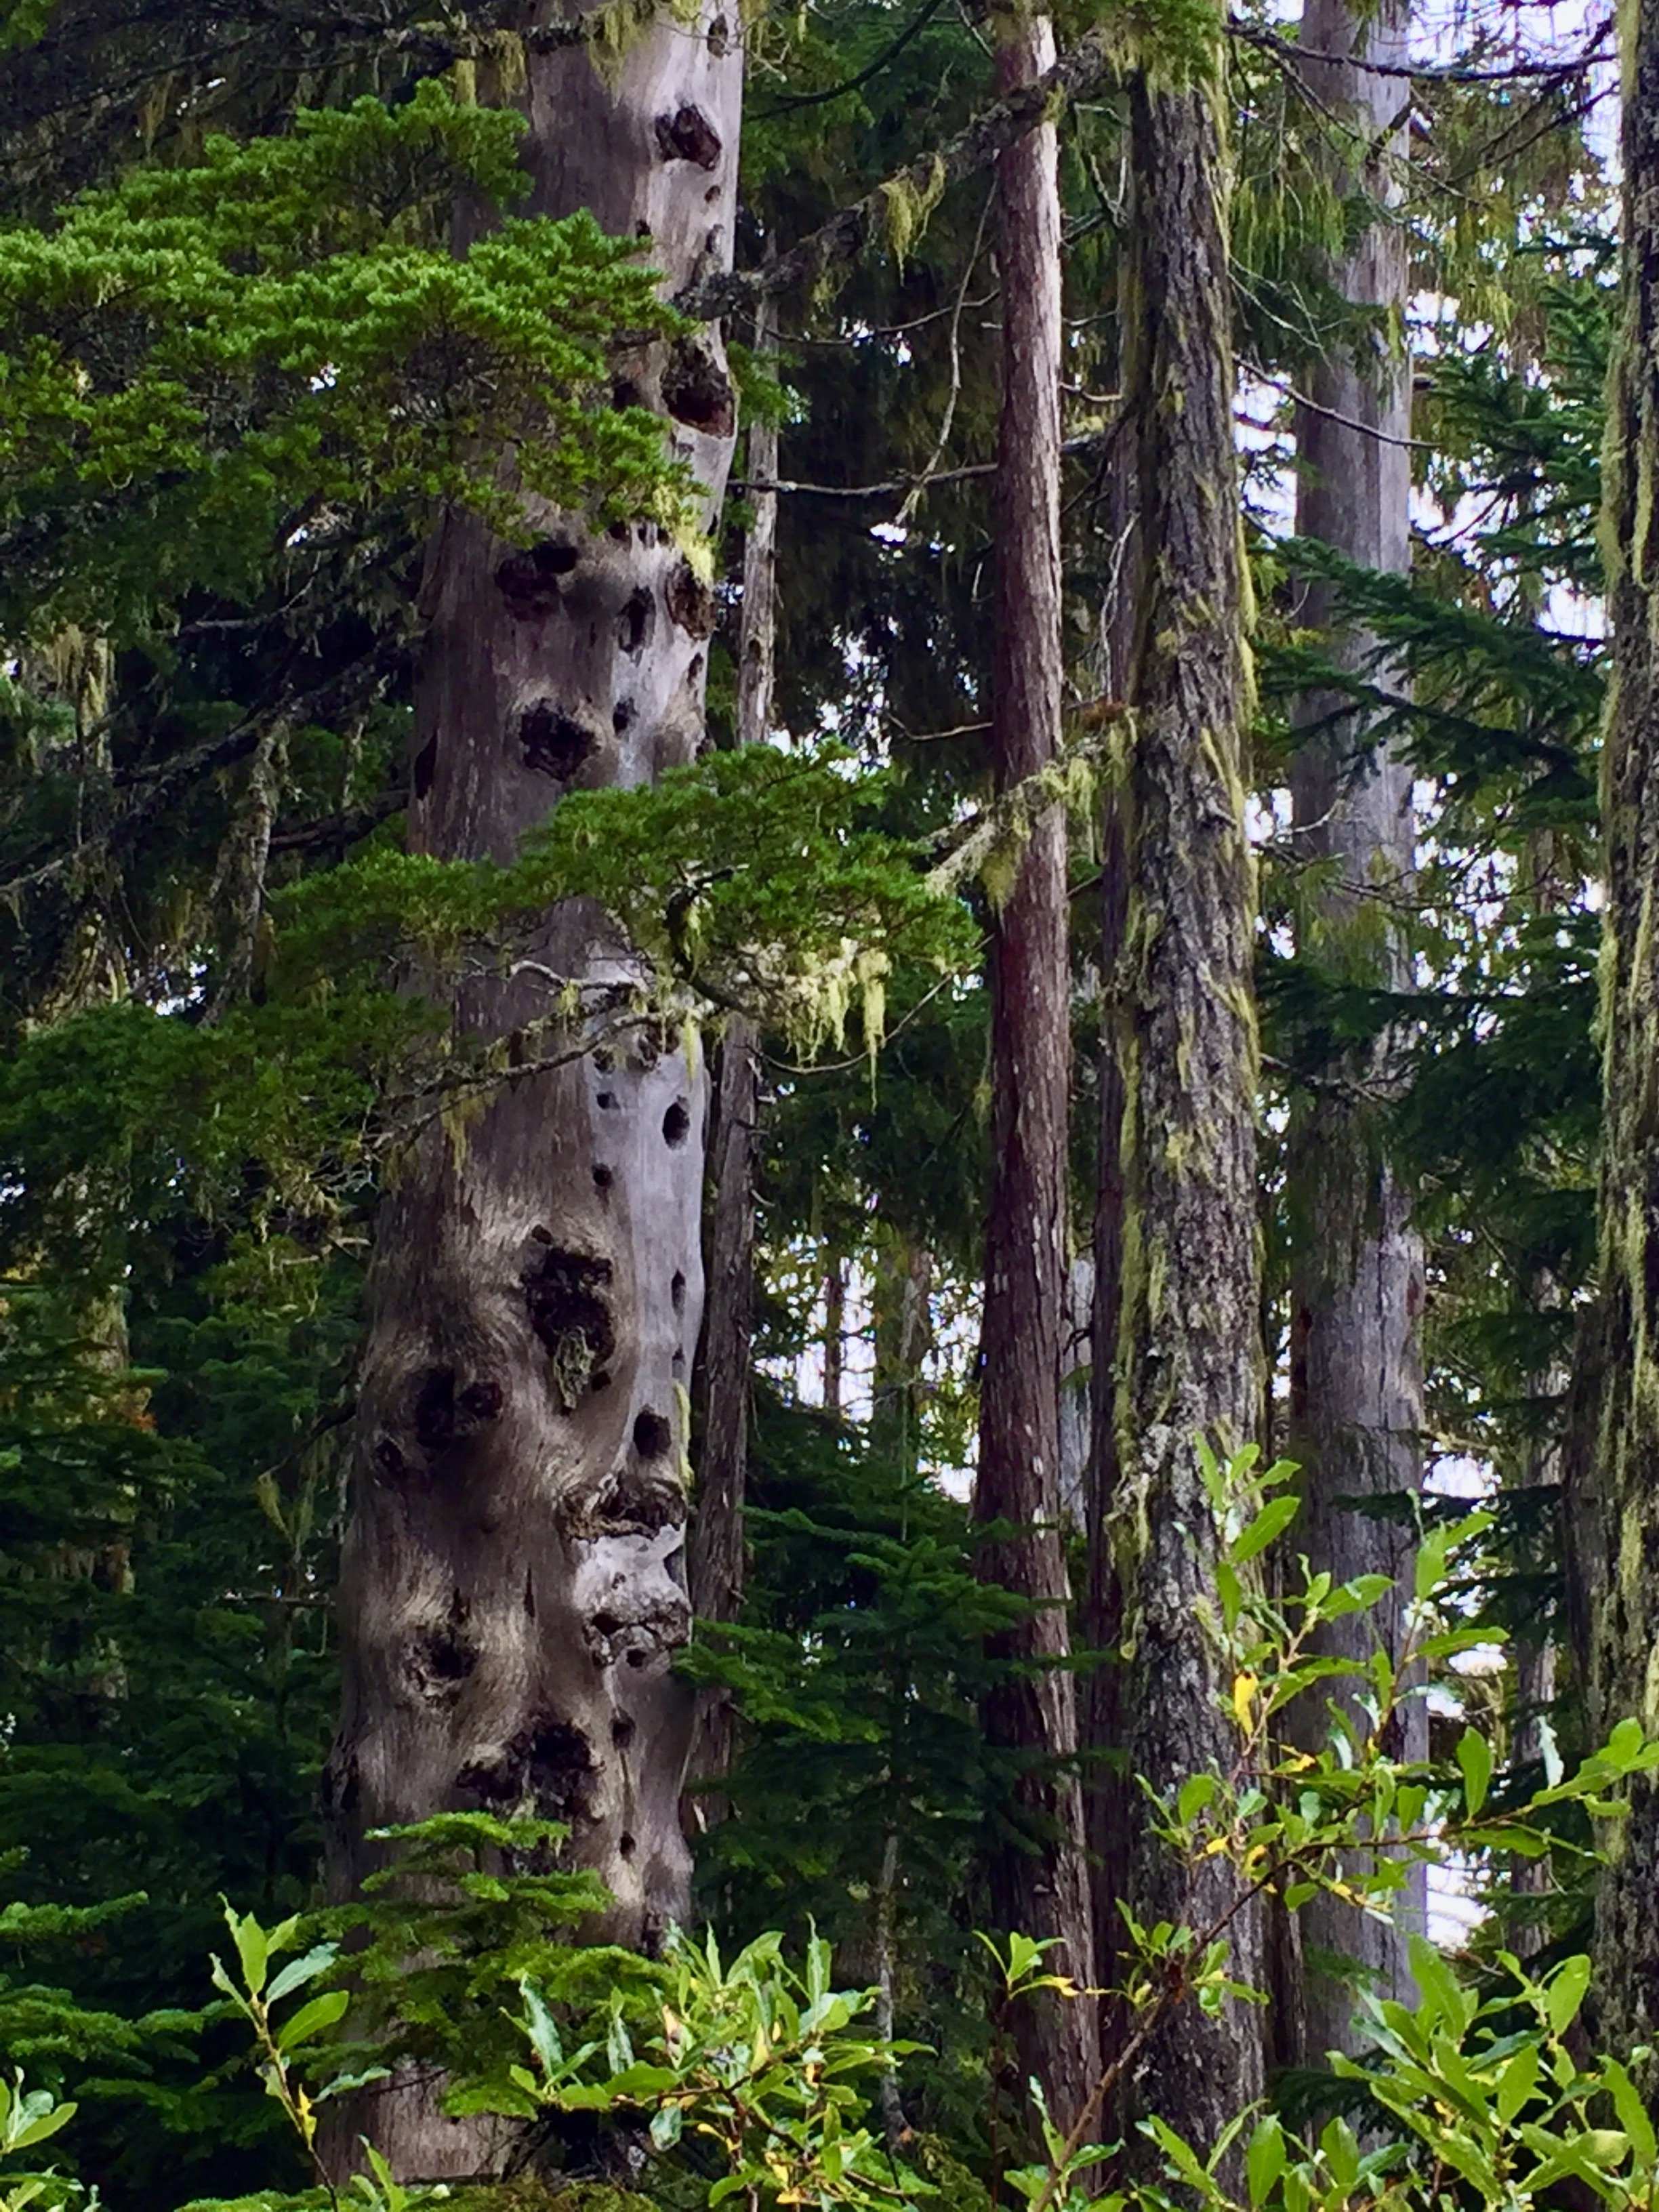 September, 2020 - Vancouver Island, British Columbia - Strathcona Provincial Park - Forbidden Plateau - Interesting tree!